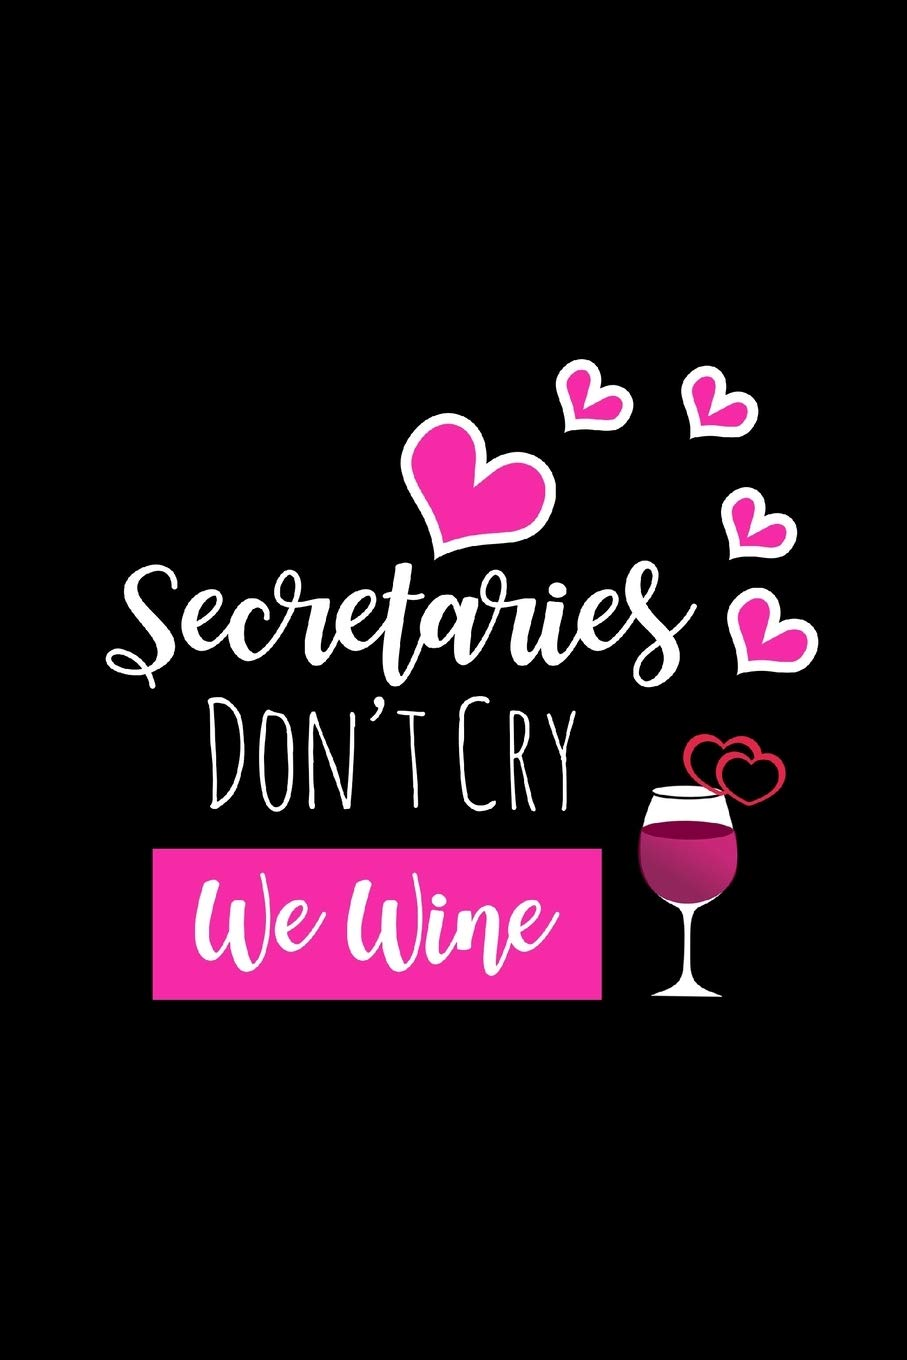 Secretaries Funny Gag Gifts For A Receptionist Birthday Christmas Gift Ideas For Coworkers Small Lined Diary Press We Wine Lol 9781679198892 Amazon Com Books